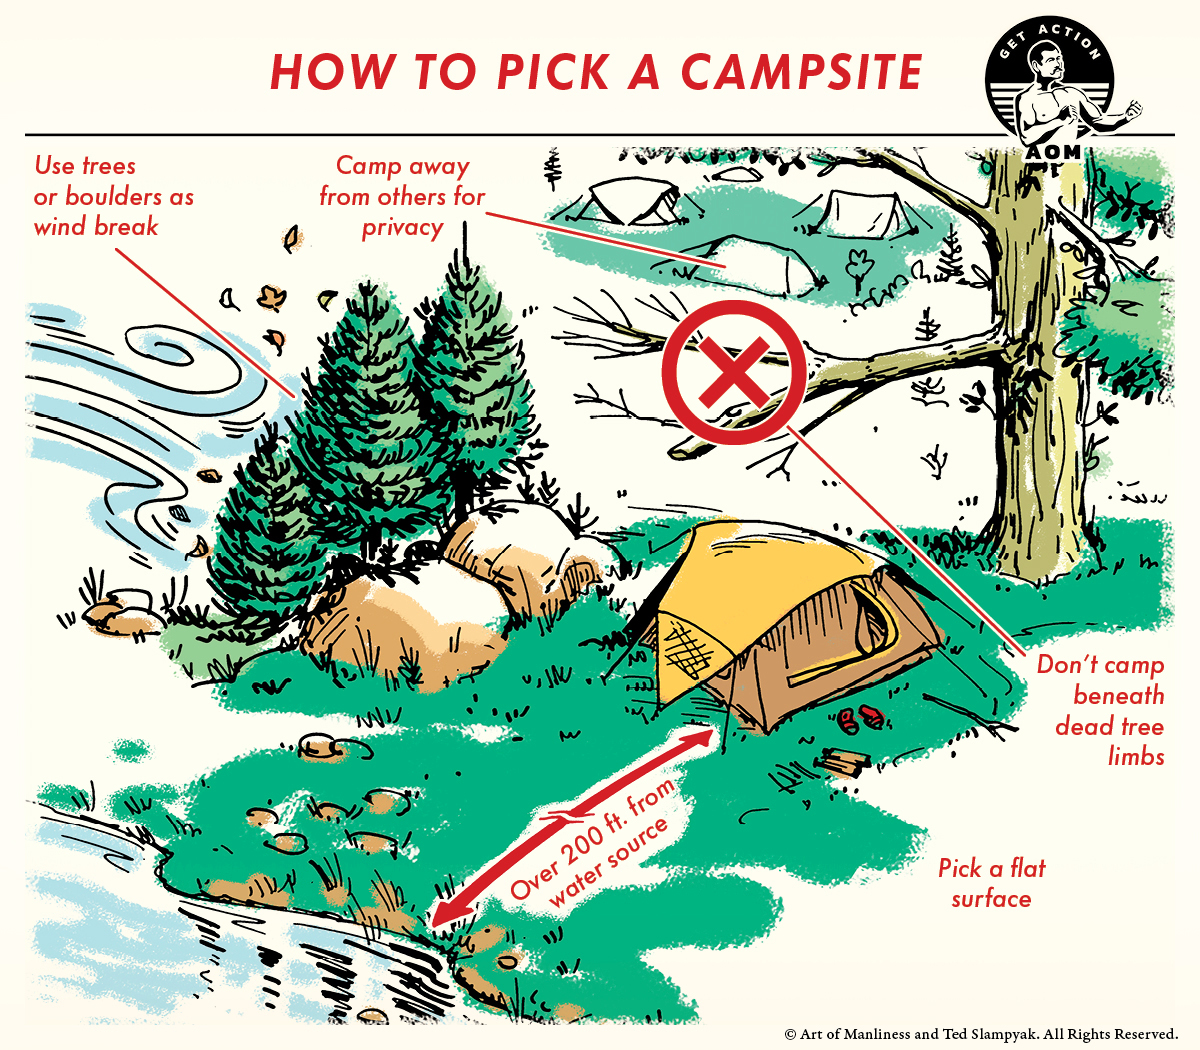 Comic guide to pick a campsite.